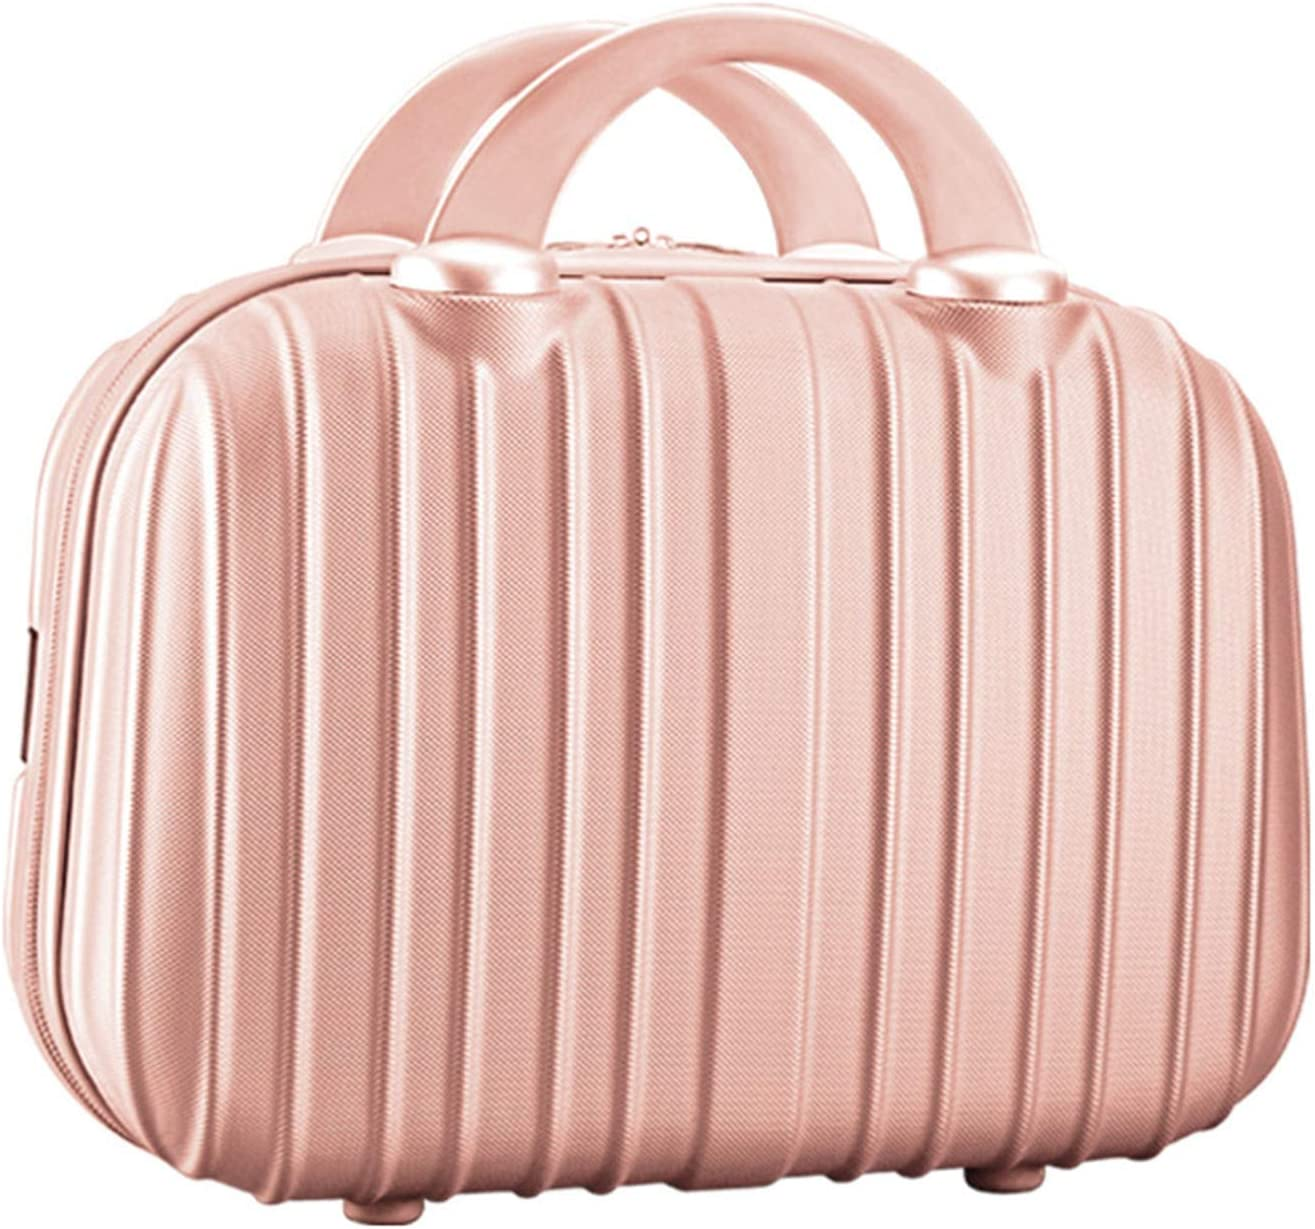 N A 14in Cosmetic Case Luggage Portable Small Carrying S Travel Max 84% Ranking TOP17 OFF